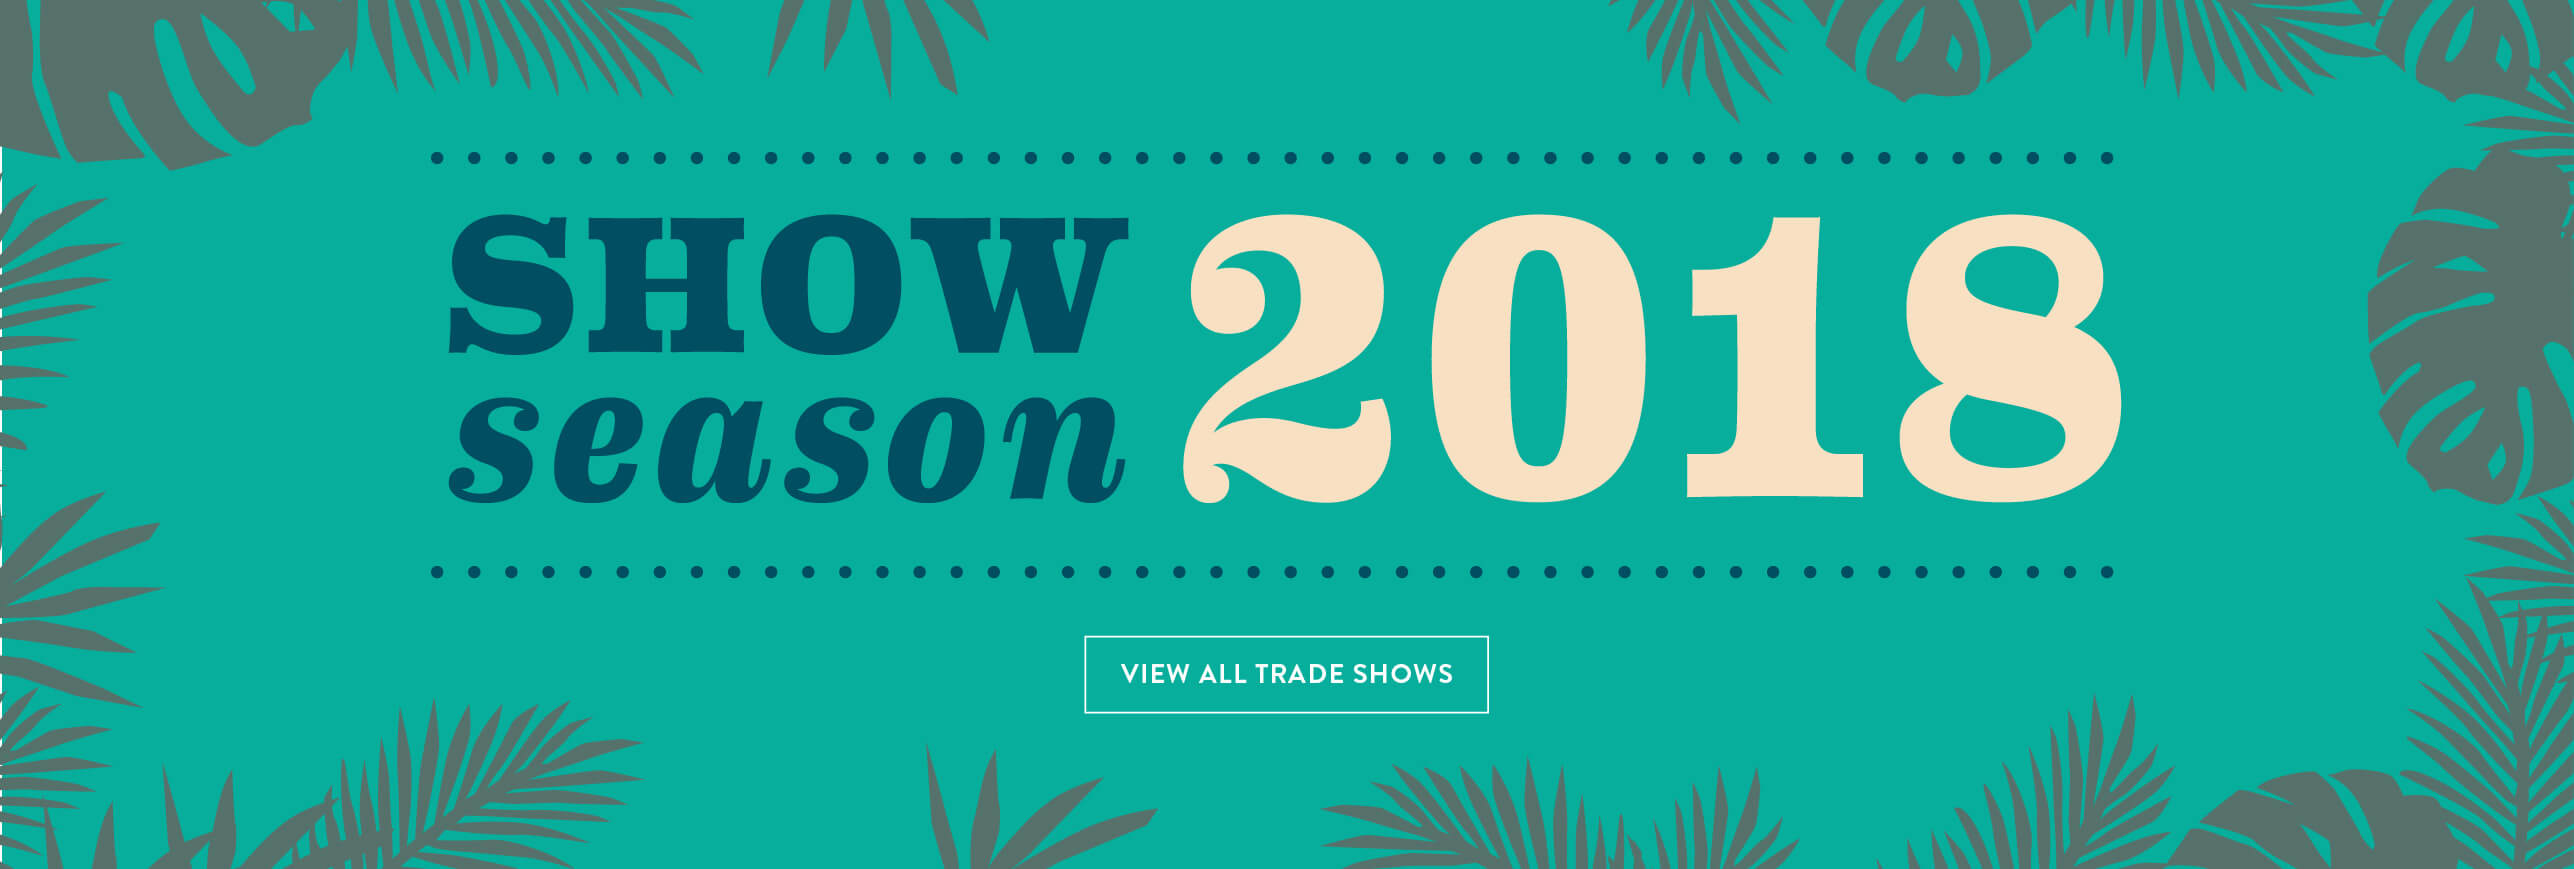 Homepage Carousel Updated Trade Show Banner